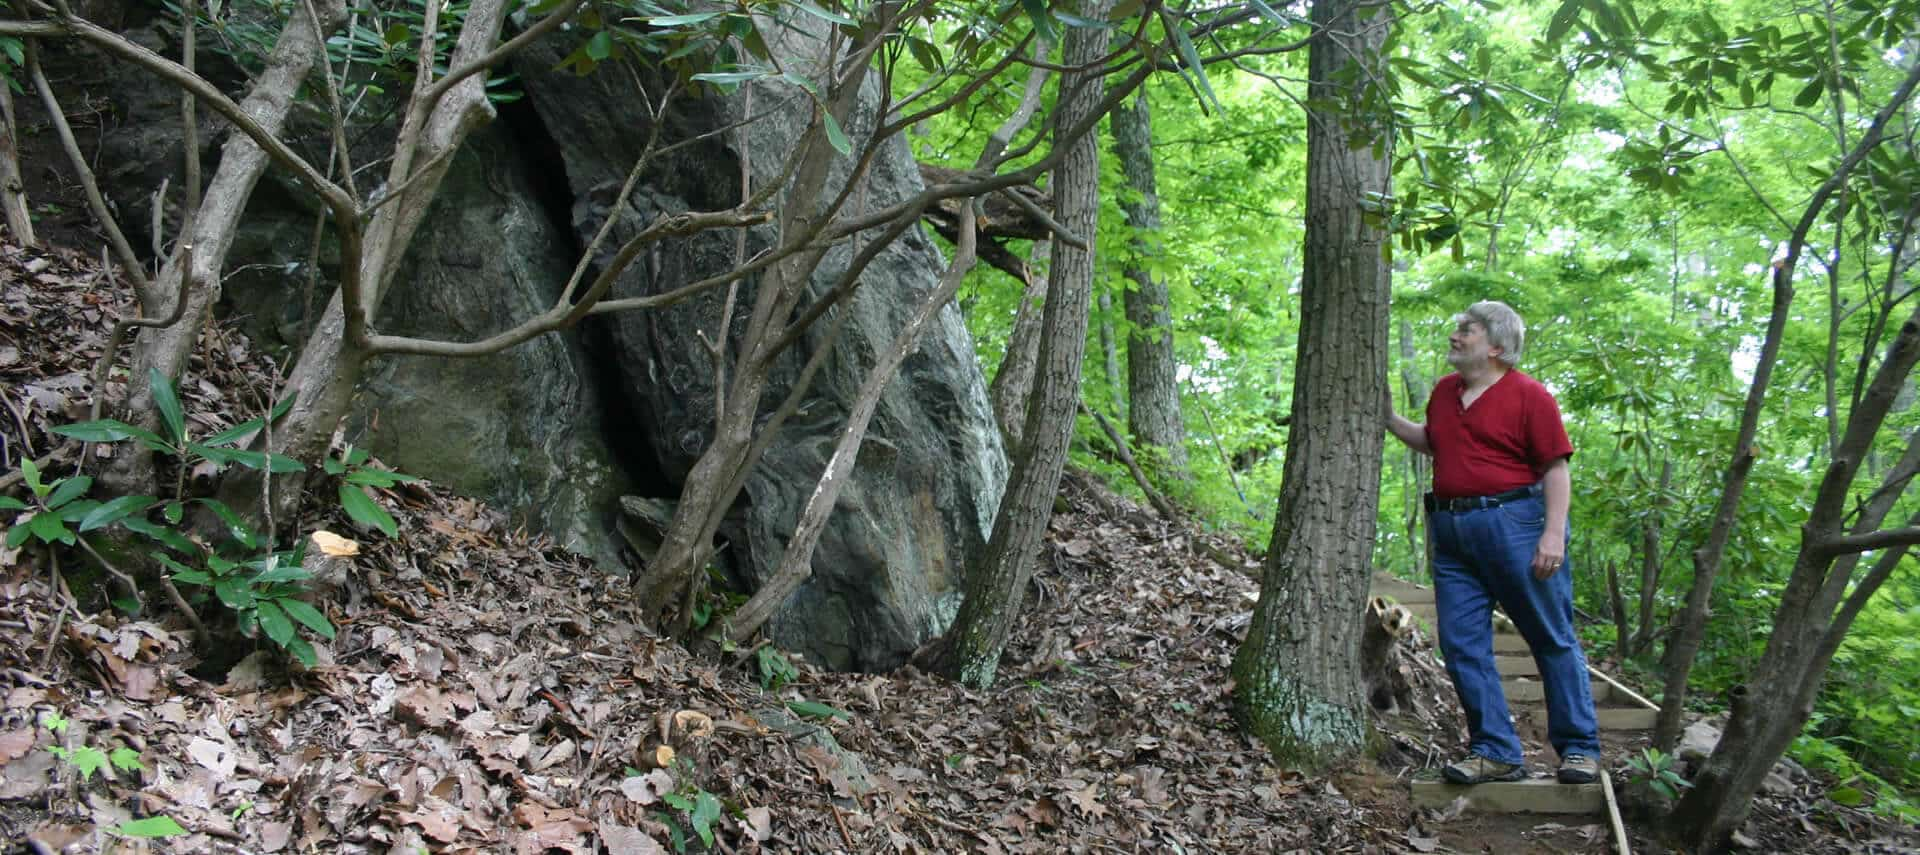 A man in a red shirt stands on wooden stairs looking at a large boulder surrounded by trees.